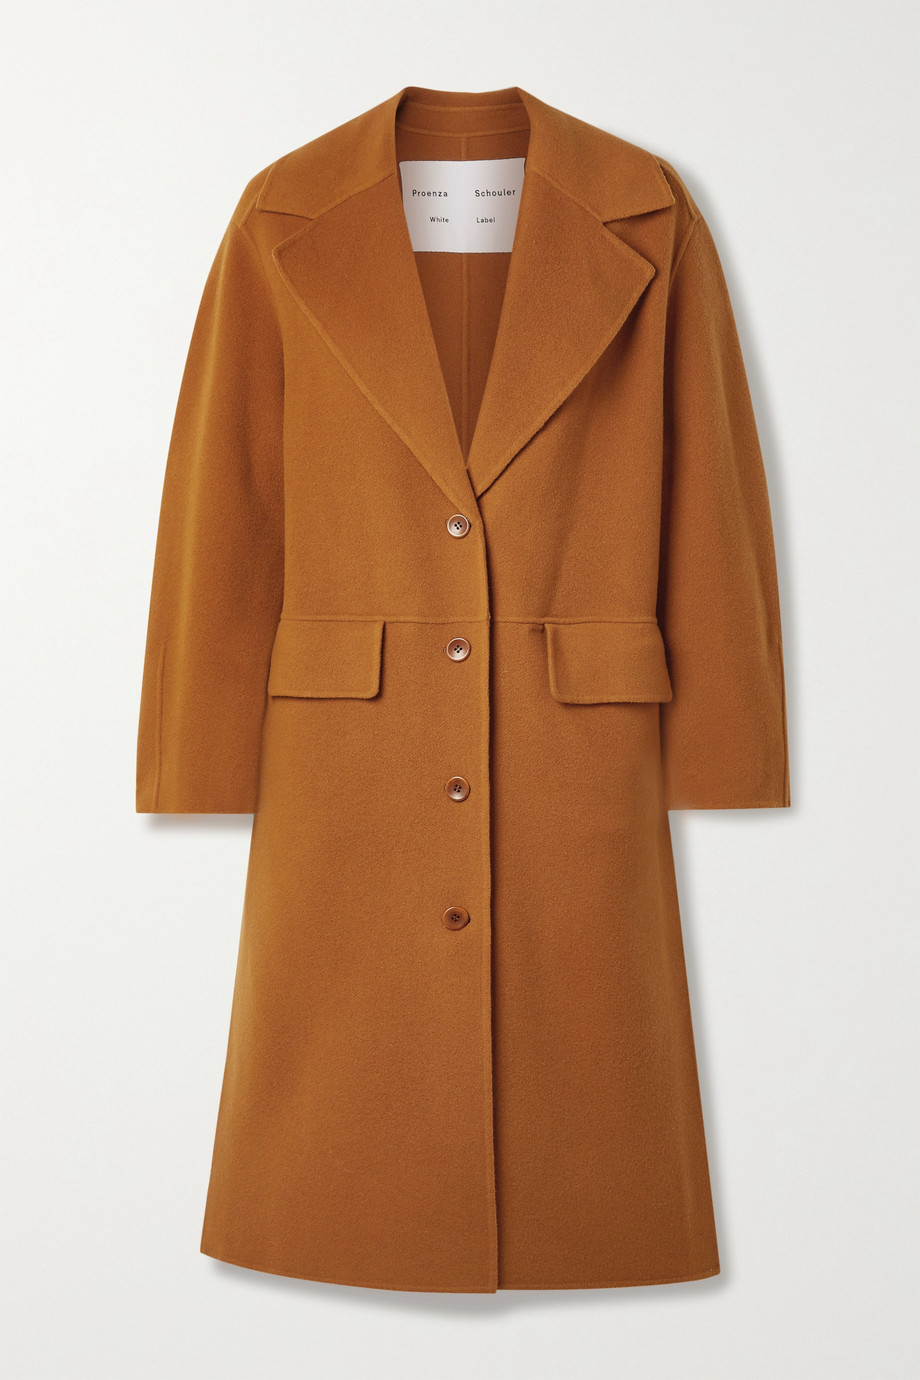 Proenza Schouler White Label Wool-blend felt coat